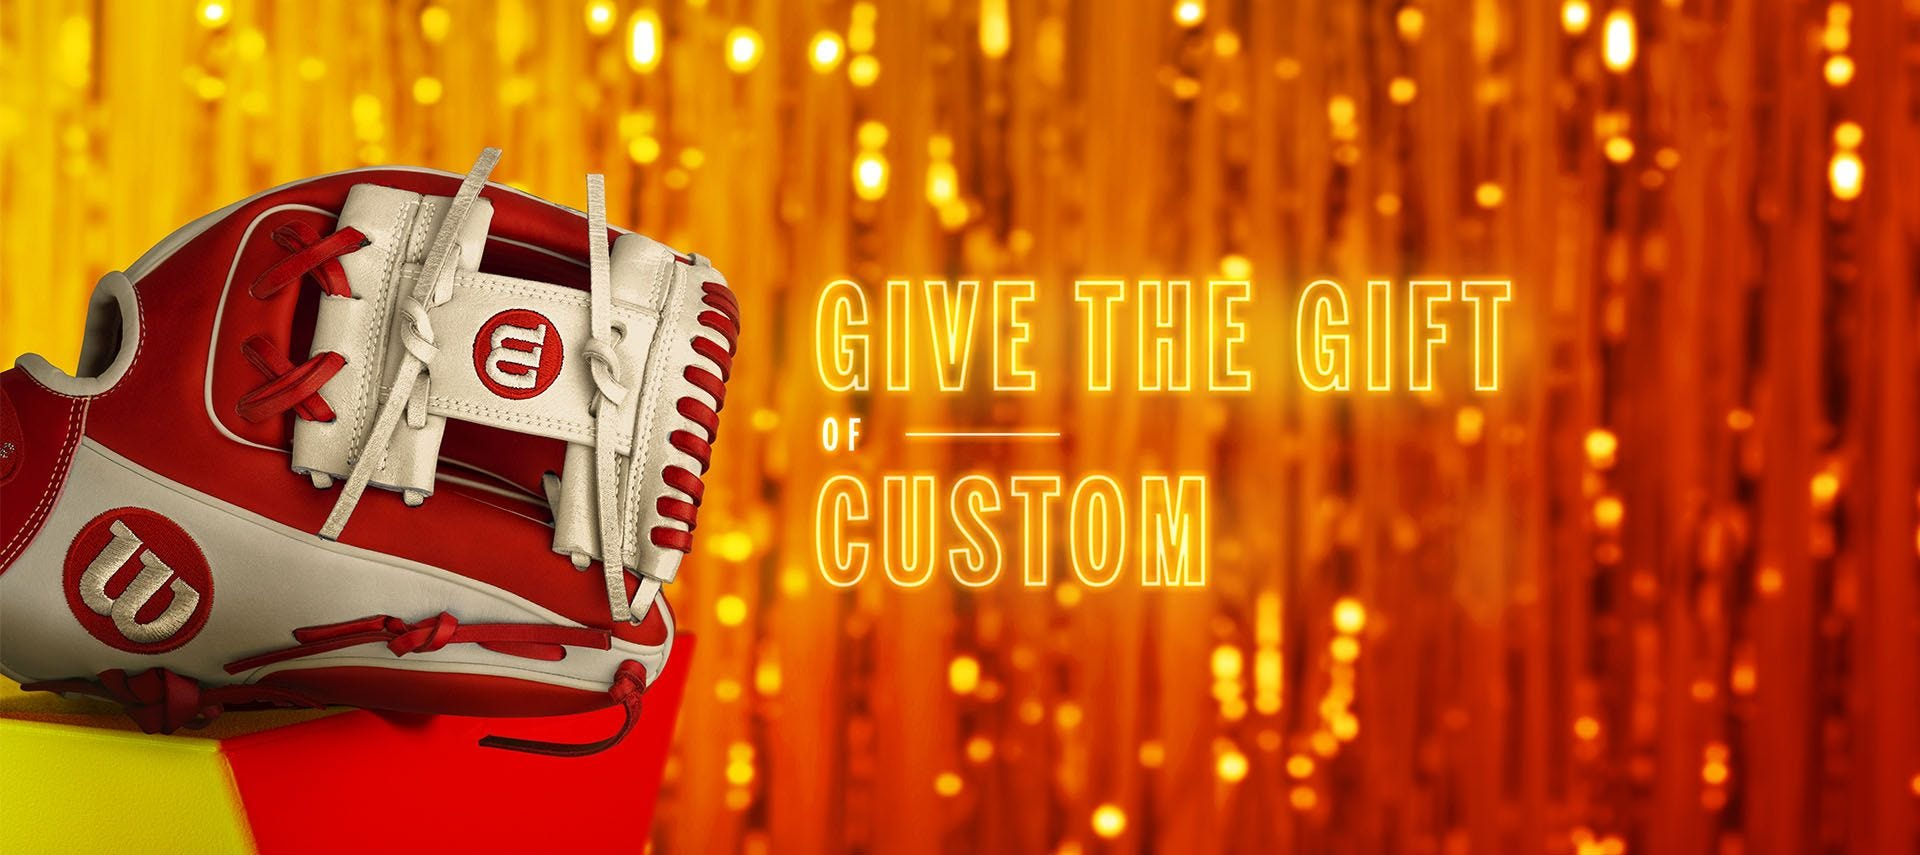 Give the Gift of Custom, neon writing featuring a red Wilson custom baseball glove